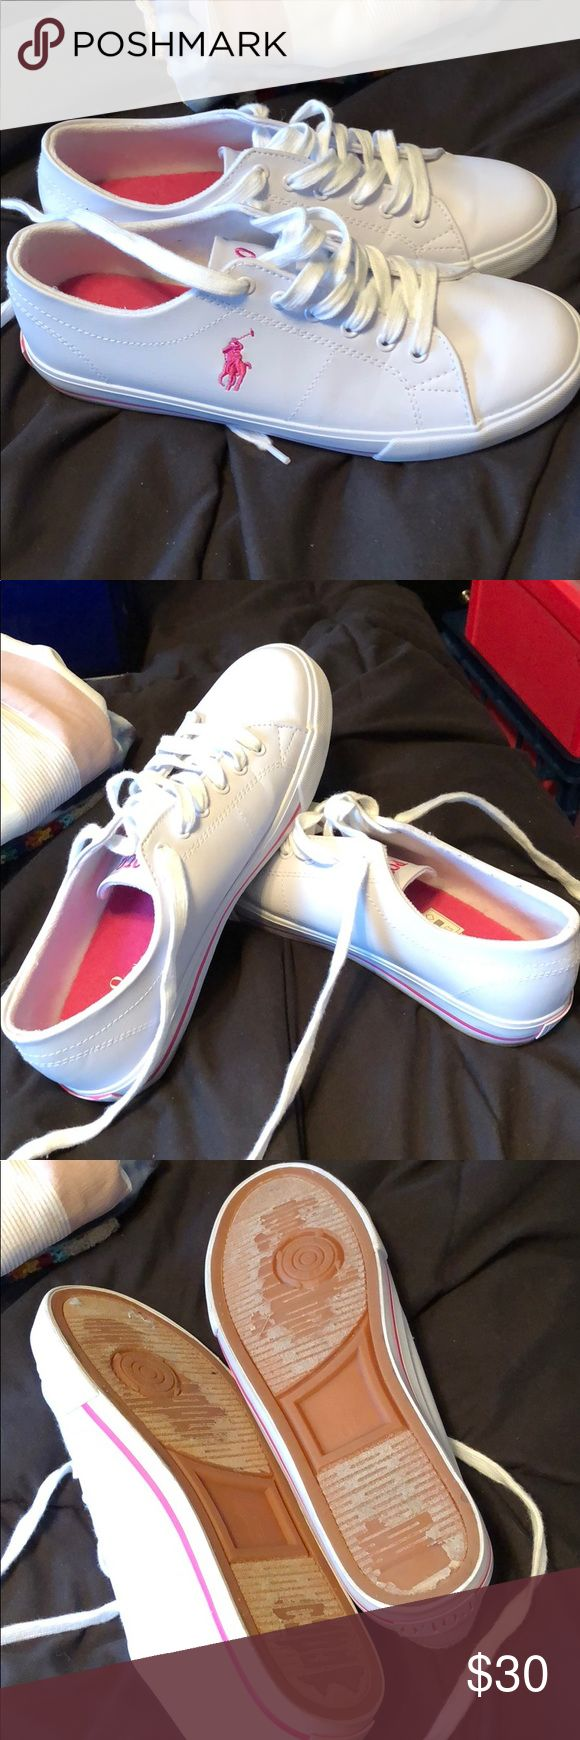 Polo ralph lauren shoes worn twice. laces and shoes clean with no scuff marks. Ralph Lauren Shoes Sneakers